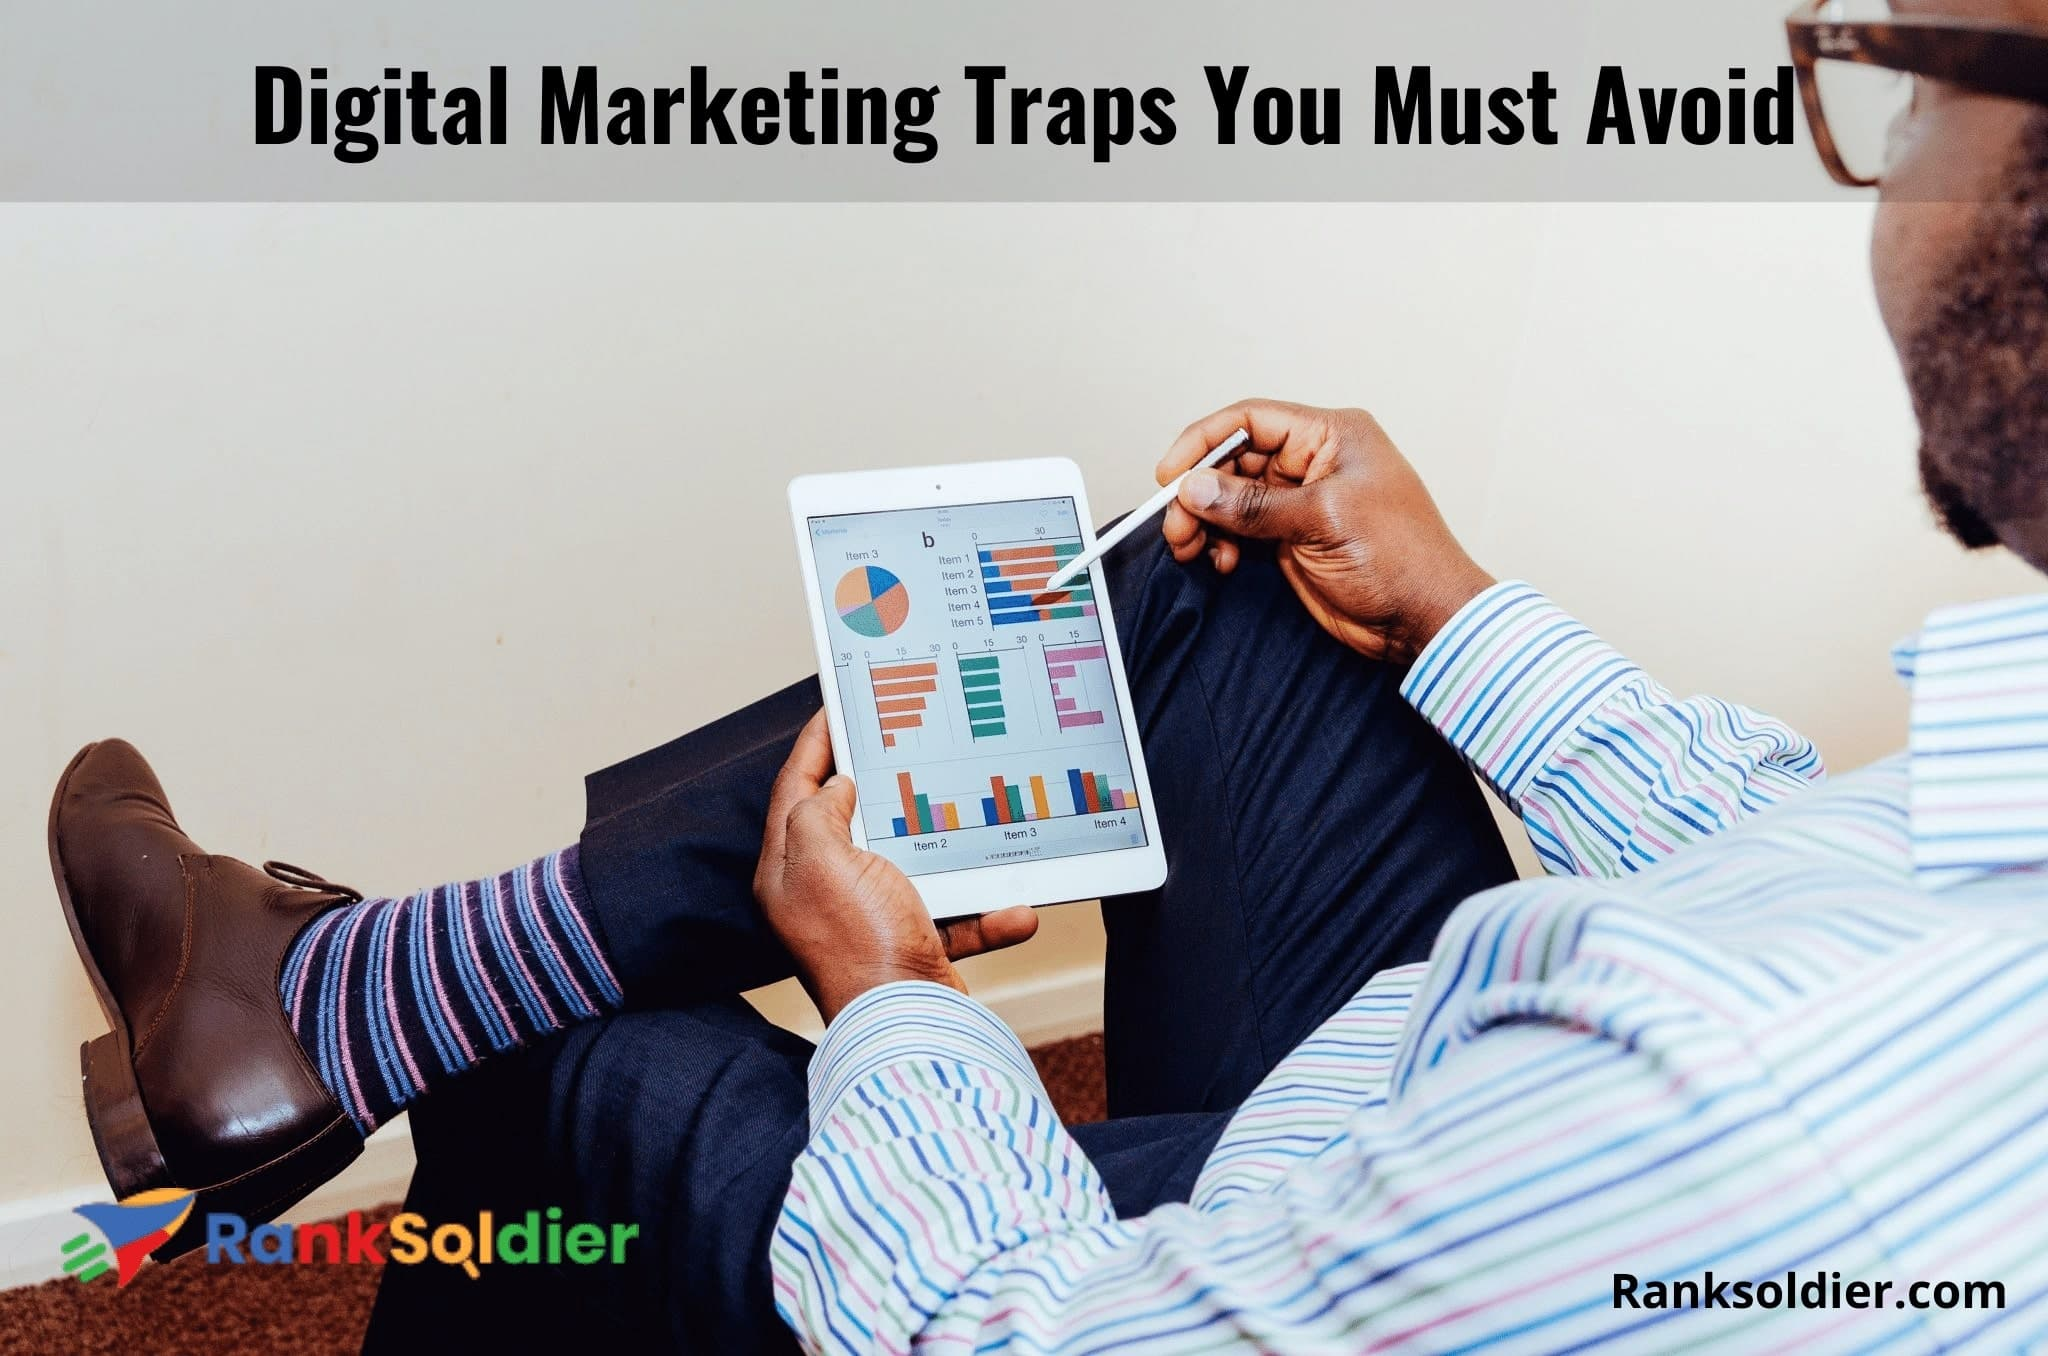 Digital Marketing Traps You Must Avoid